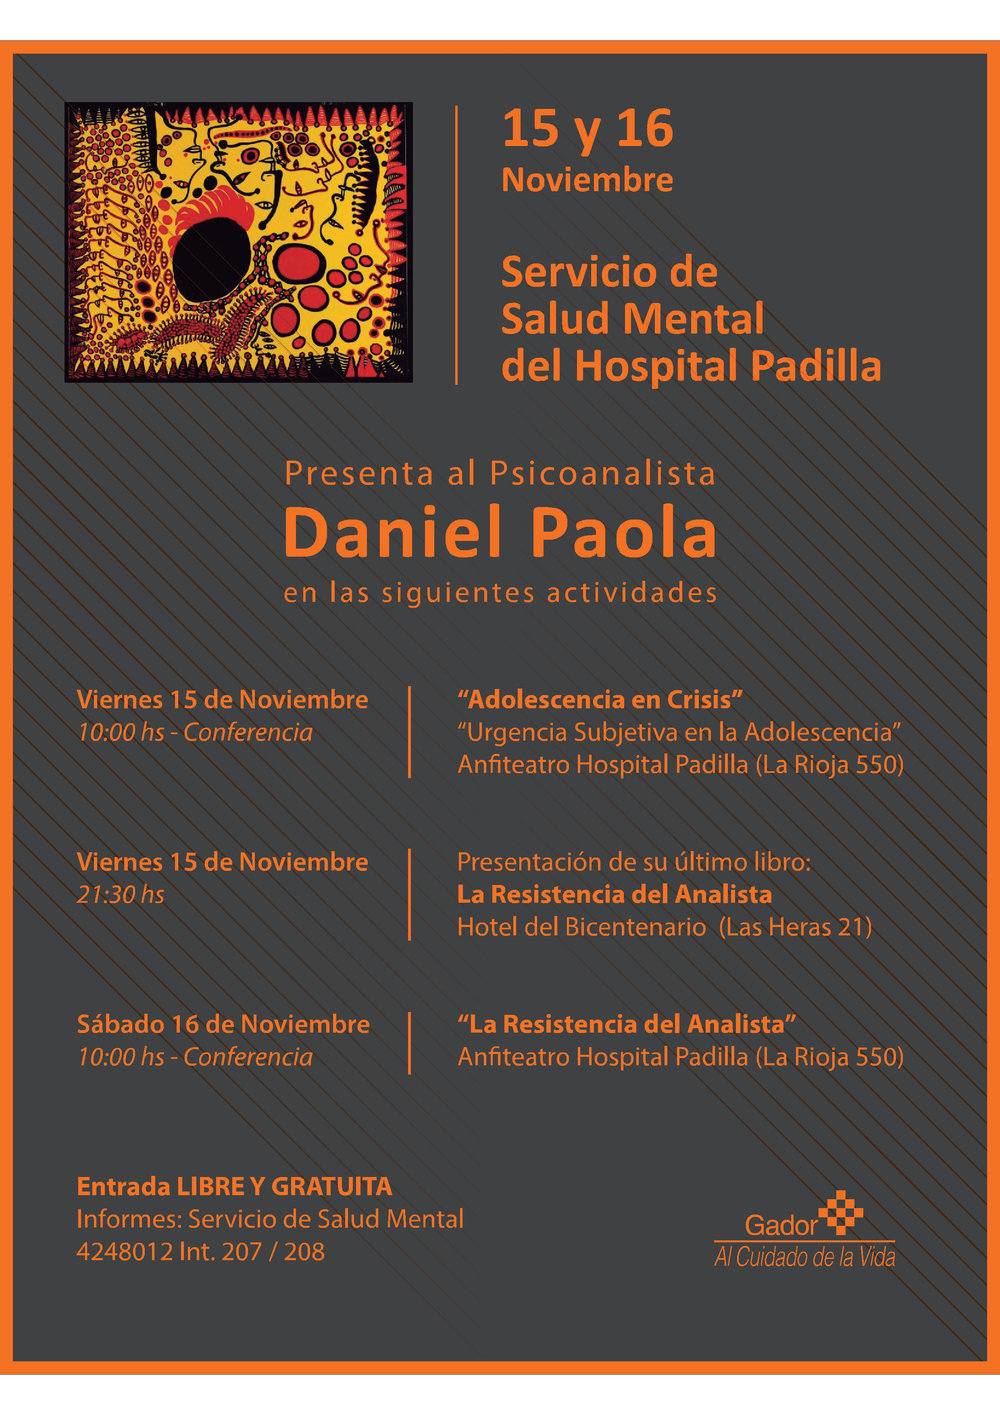 Afiche_Hospital_Padilla_Oct13[1] (1)